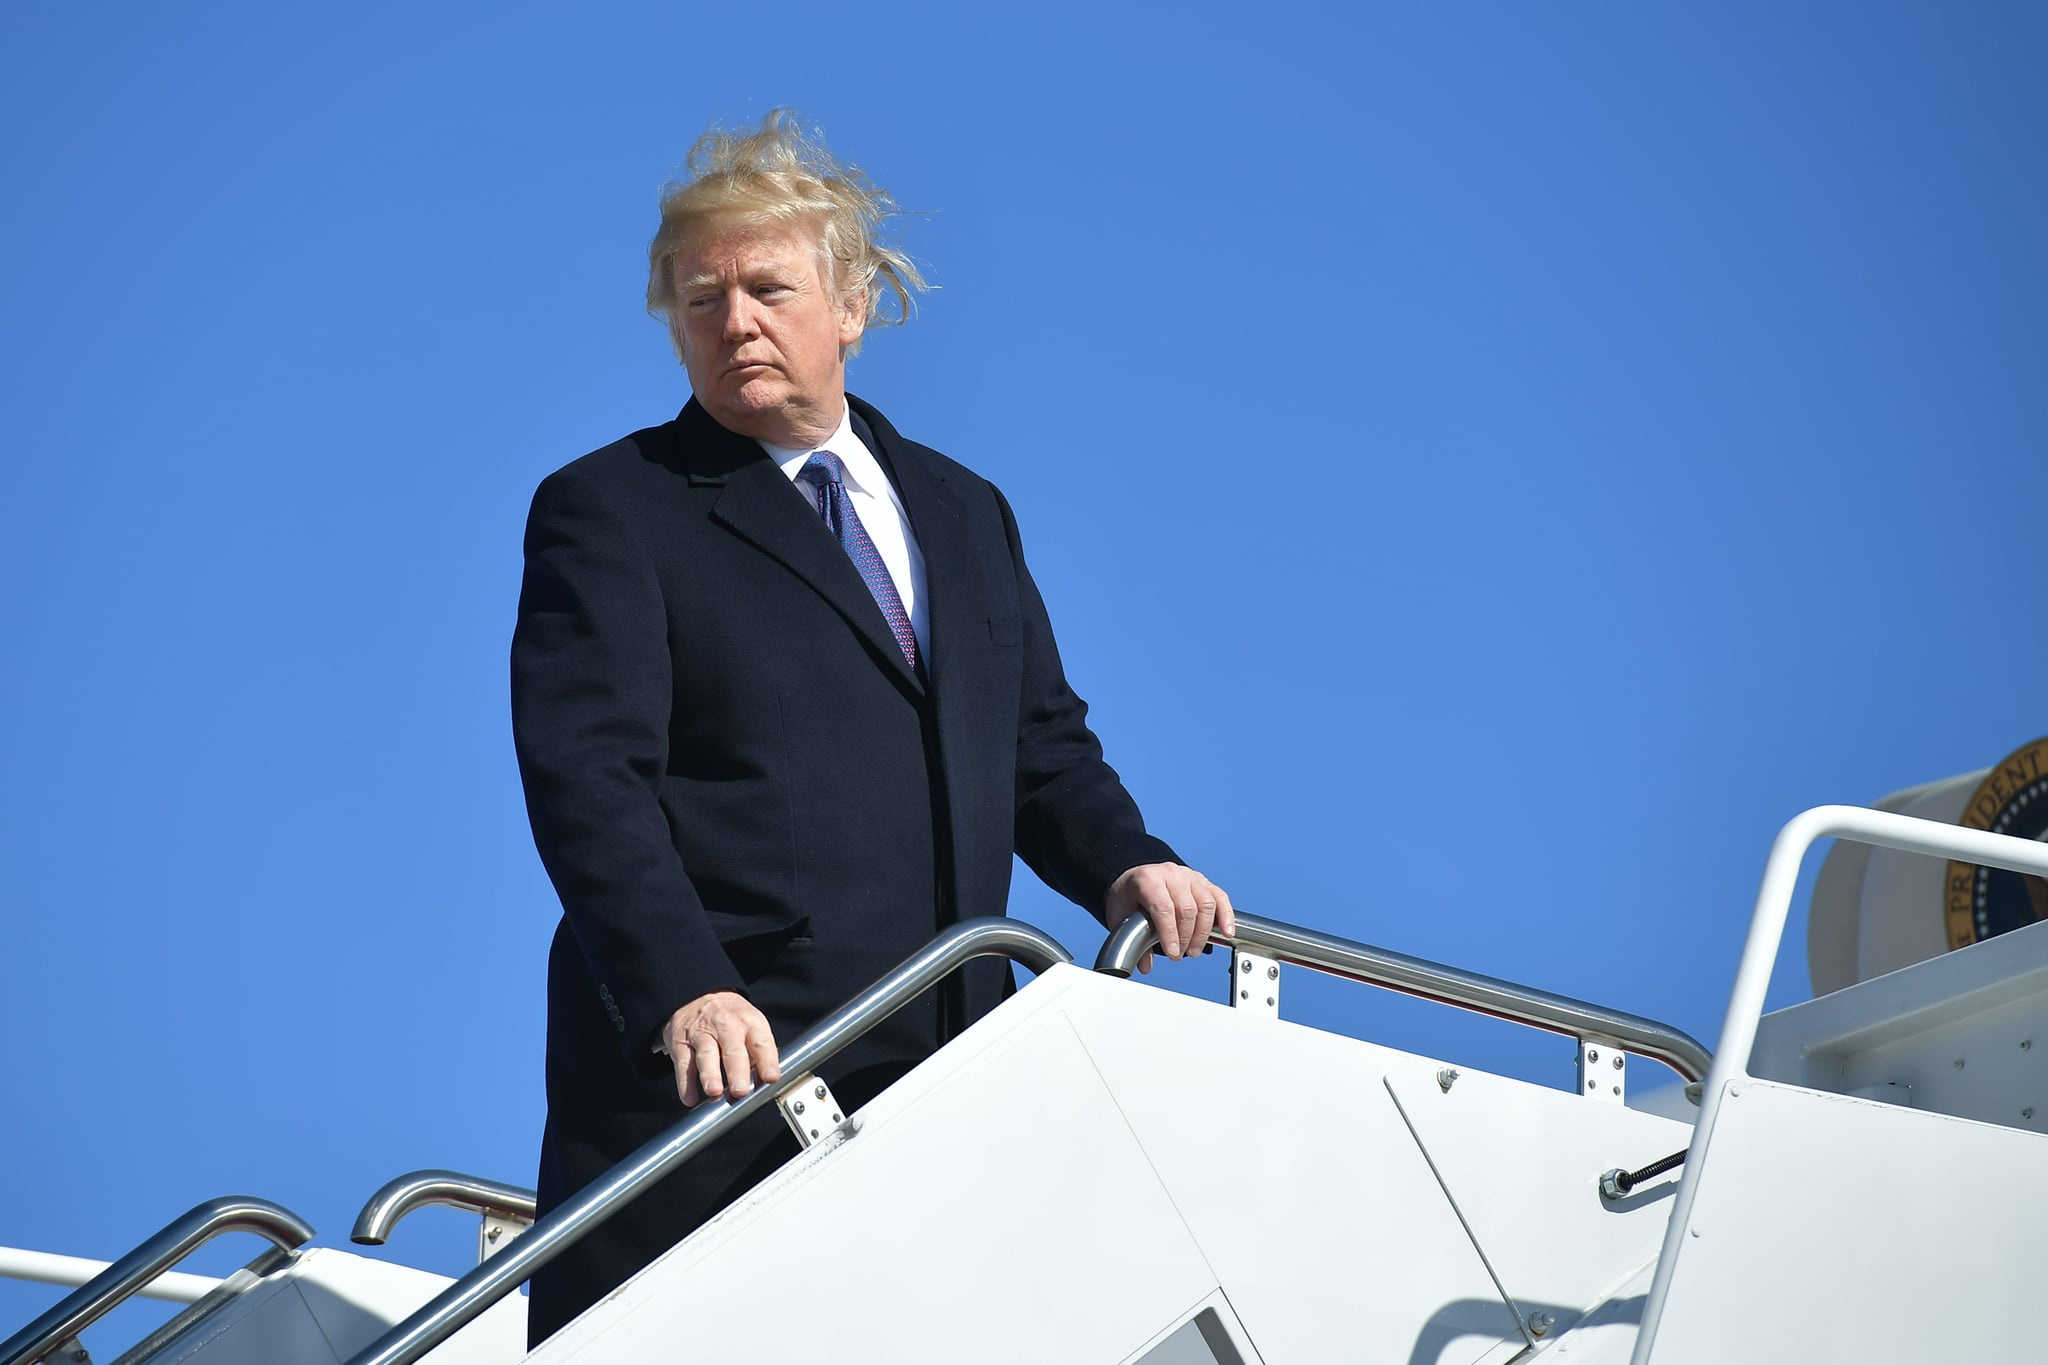 Wind Blows Off Trump's Combover as He Boards Air Force One